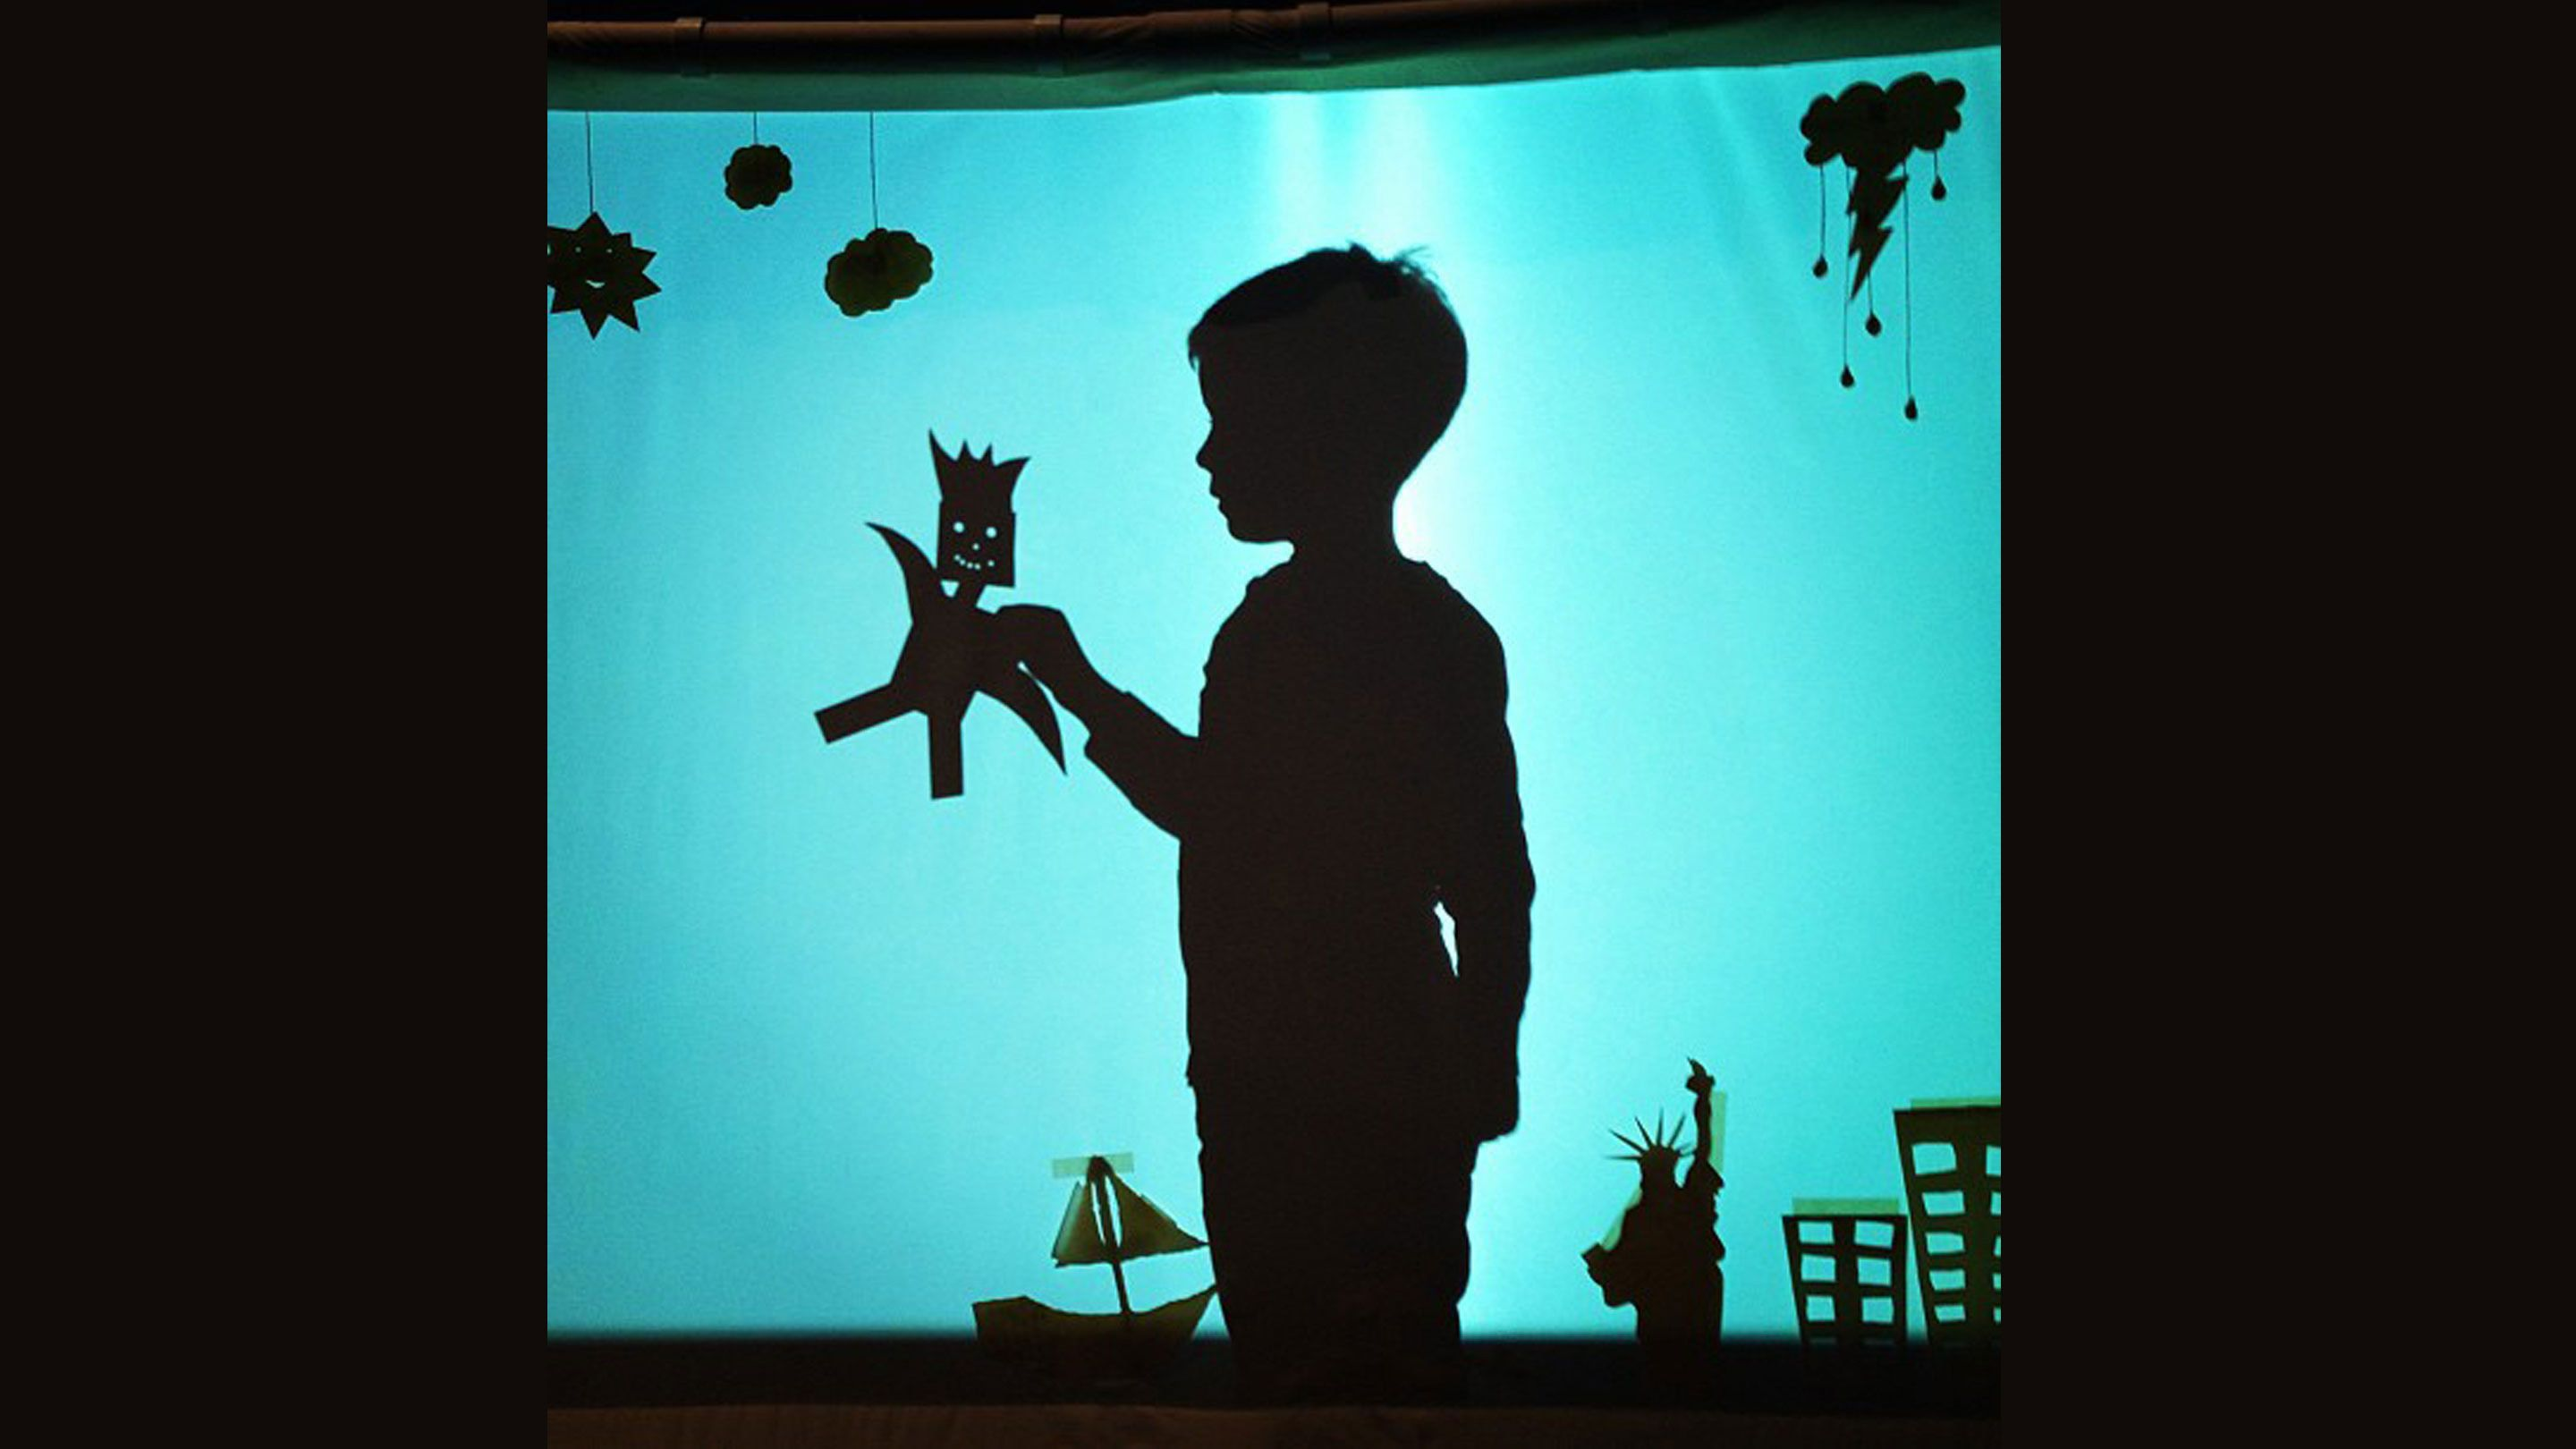 Silhouette of a boy holding a paper puppet